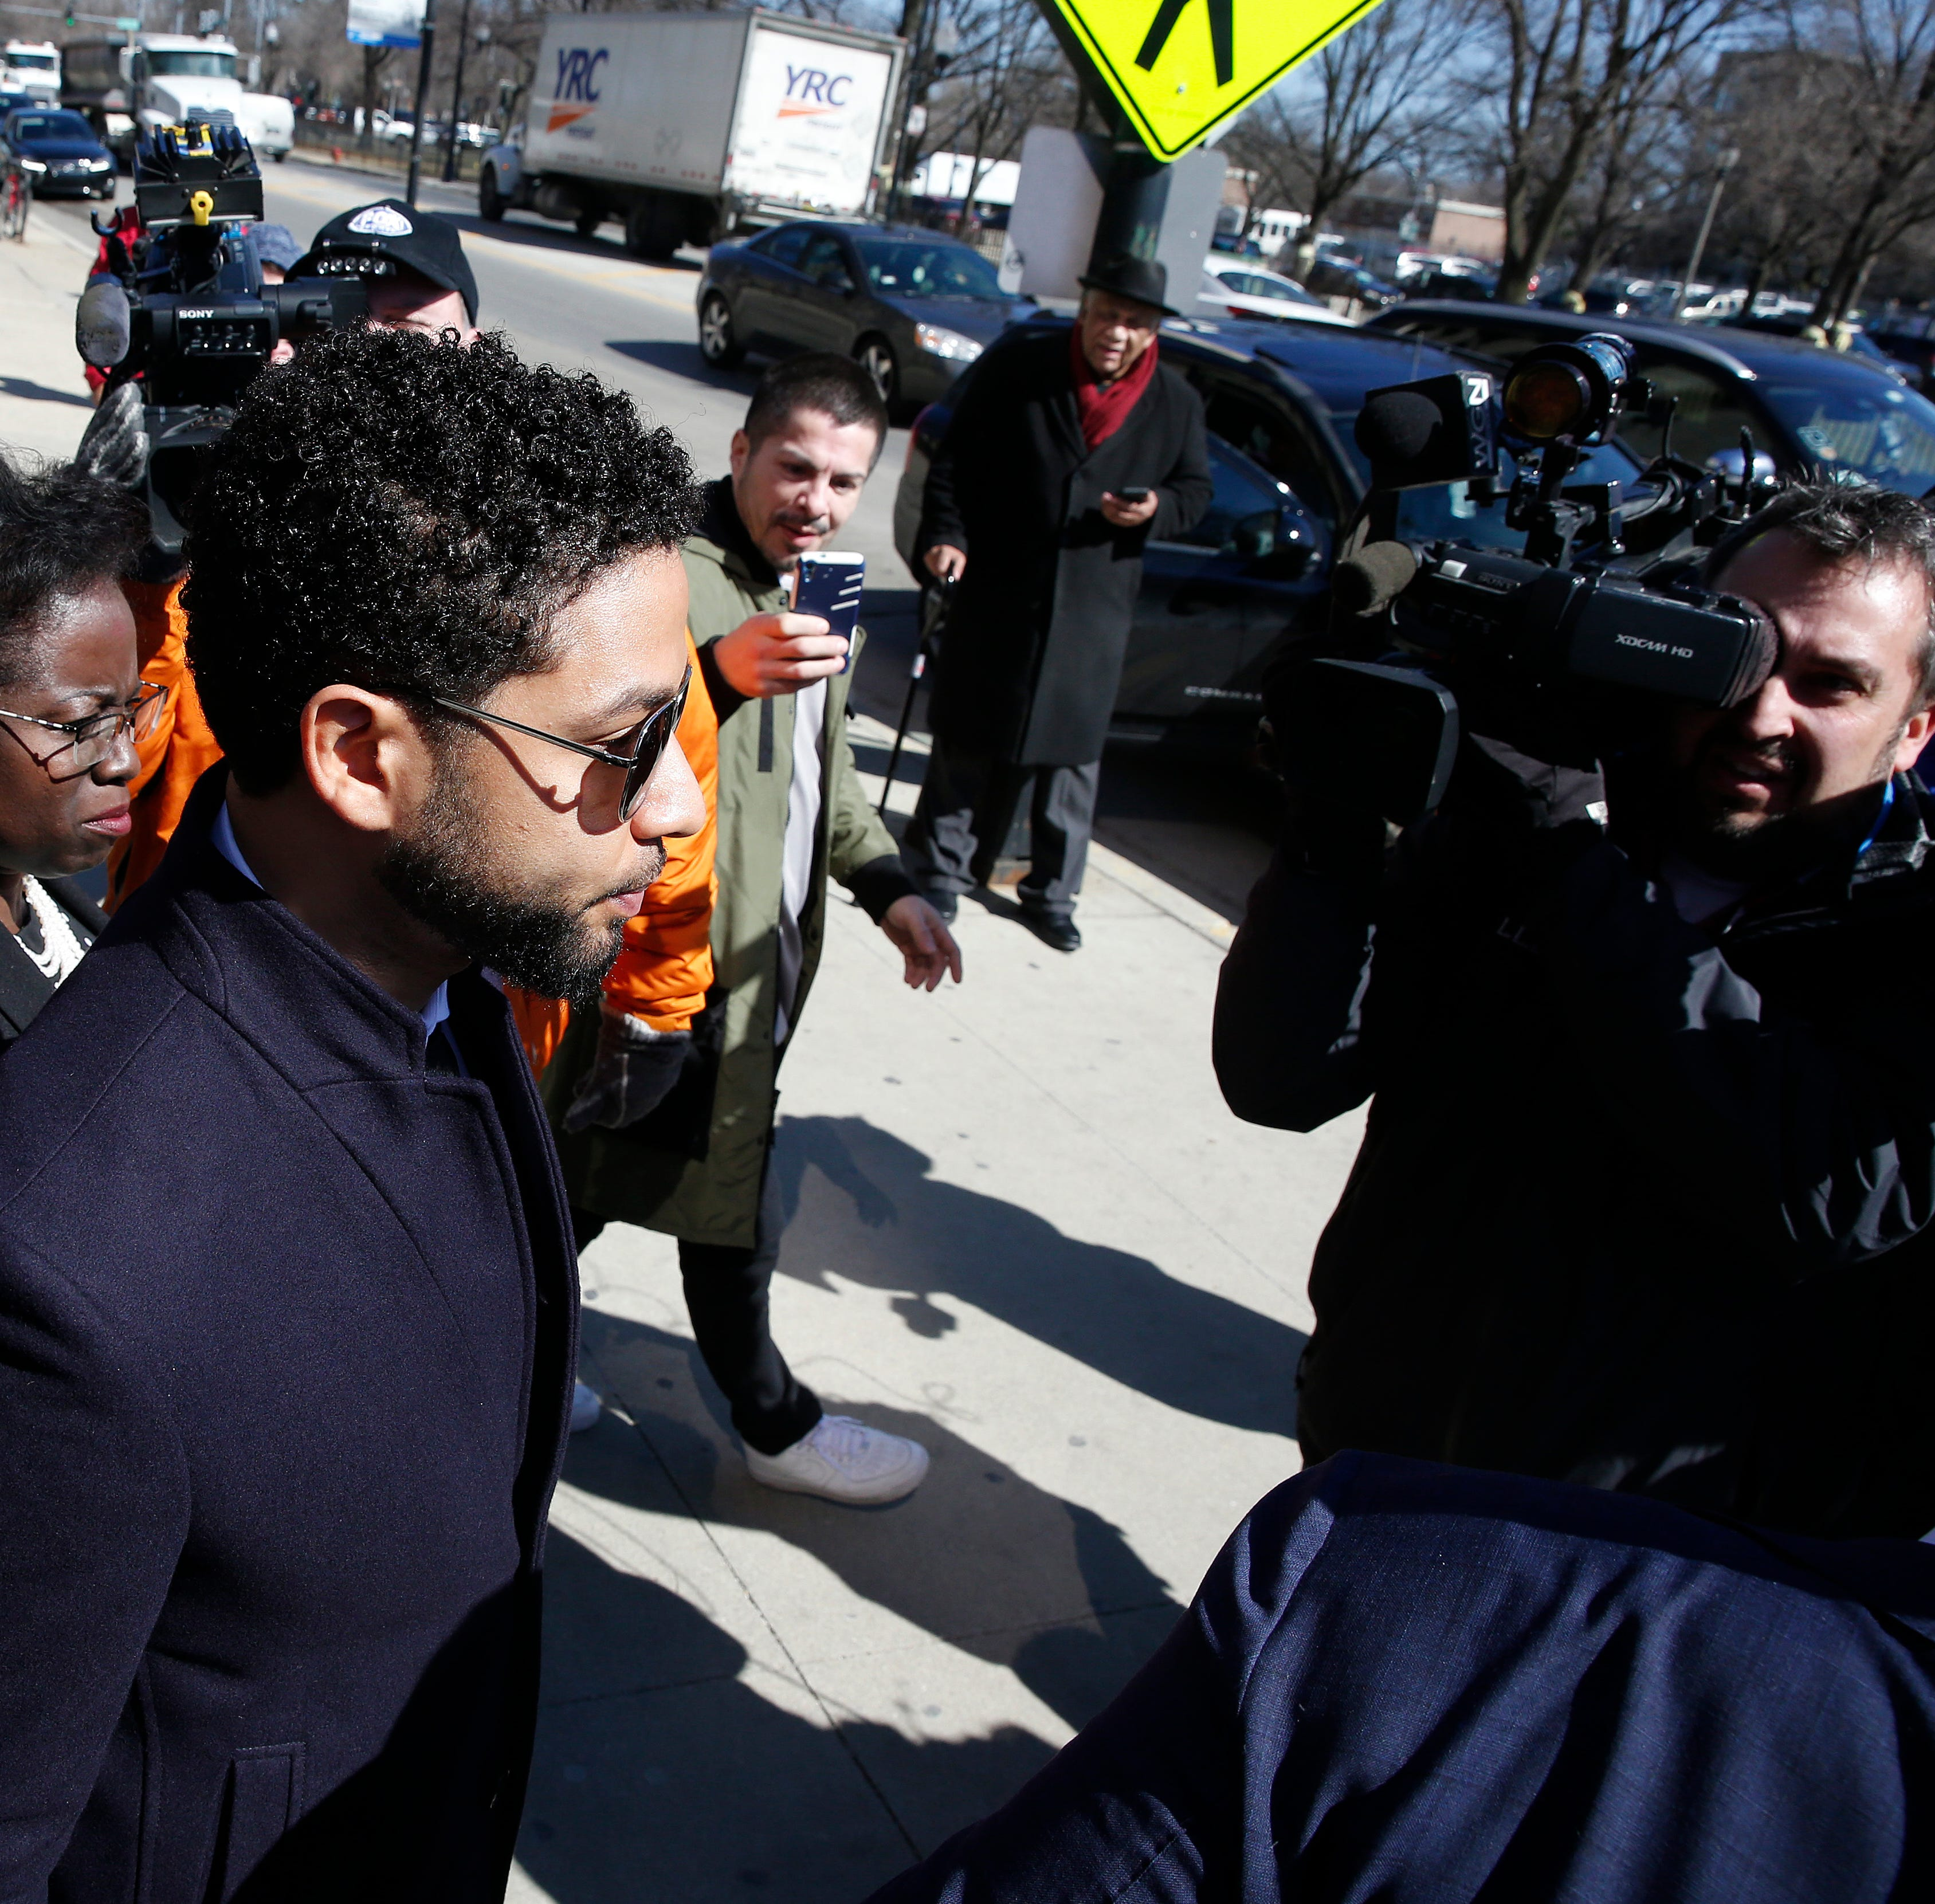 Jussie Smollett investigation cost $130,000 in OT. Rahm Emanuel says Chicago will make 'Empire' actor pay